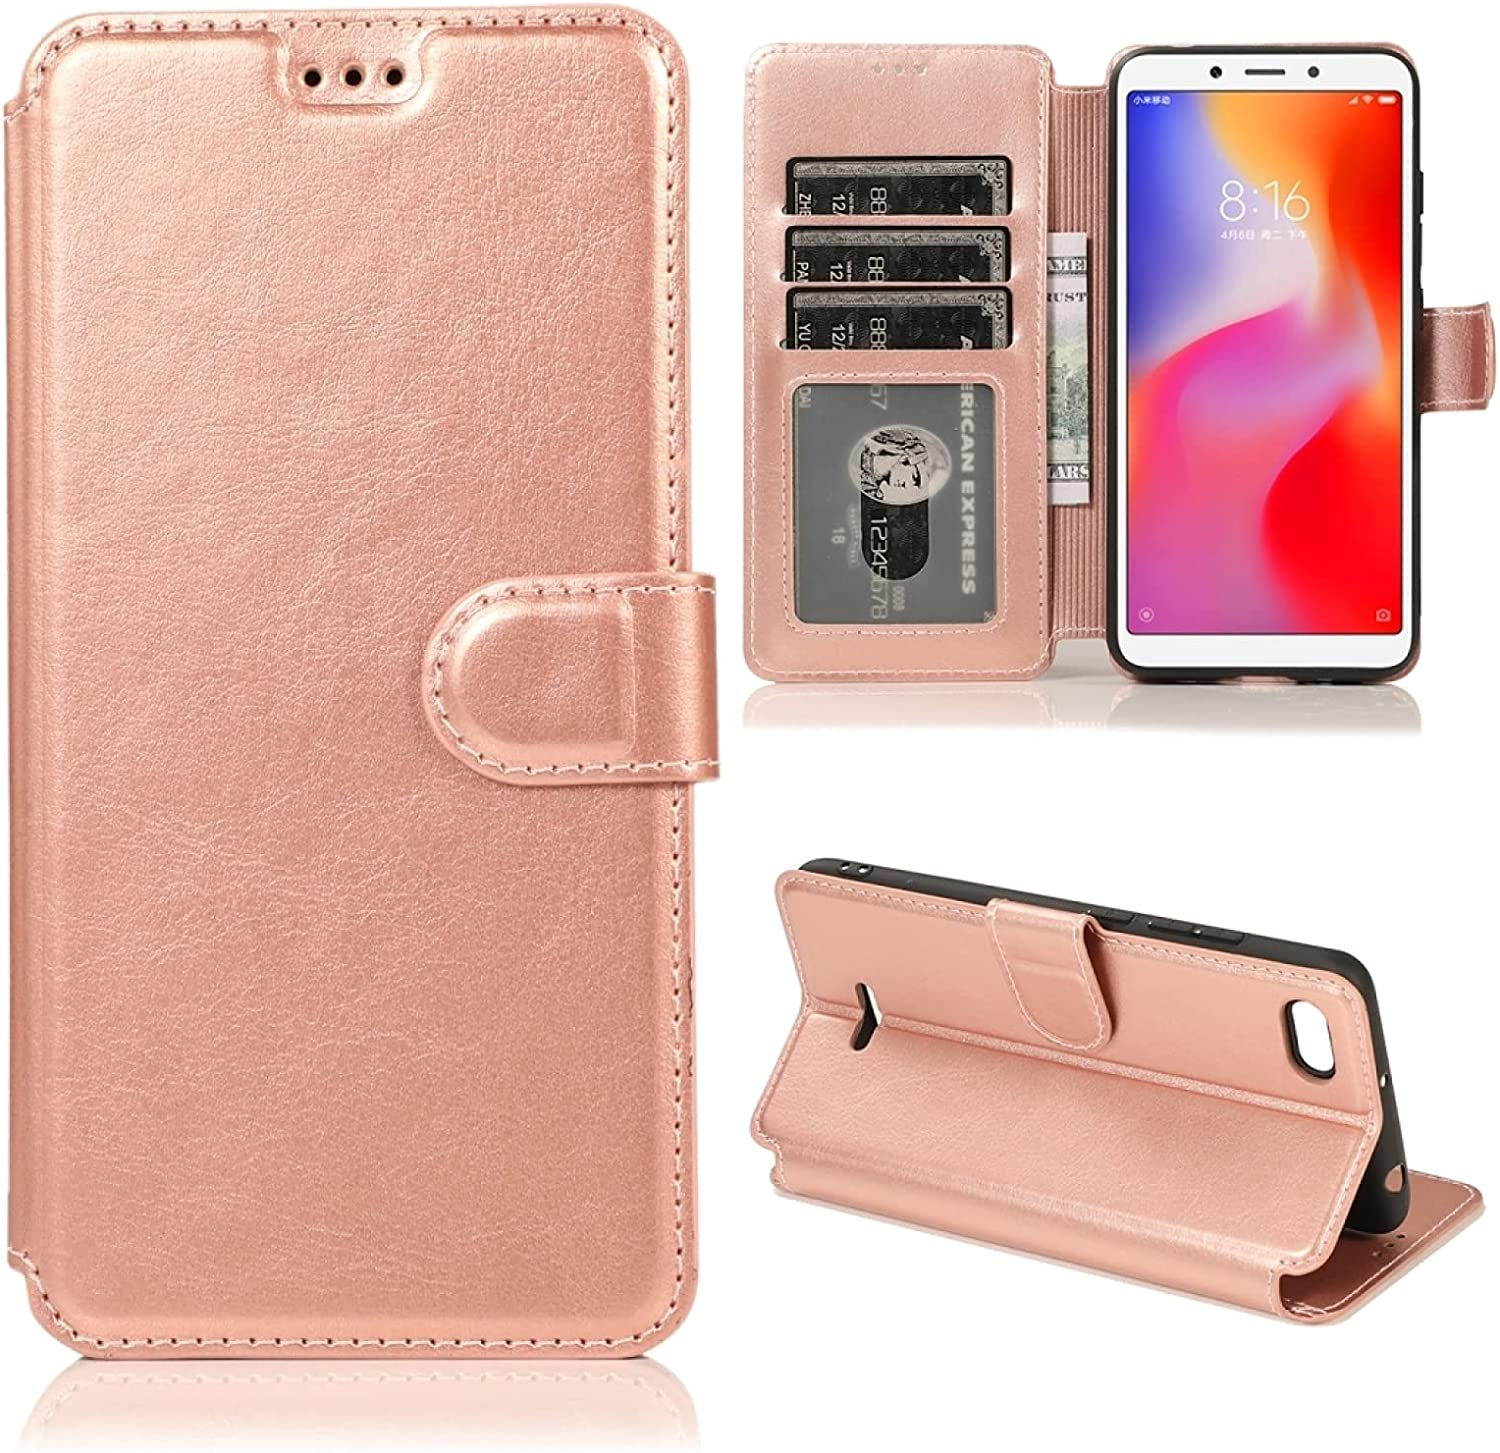 LUNCA for Xiaomi Redmi 6A Magnetic Buckle Horizonta Price reduction Quantity limited Texture Calf